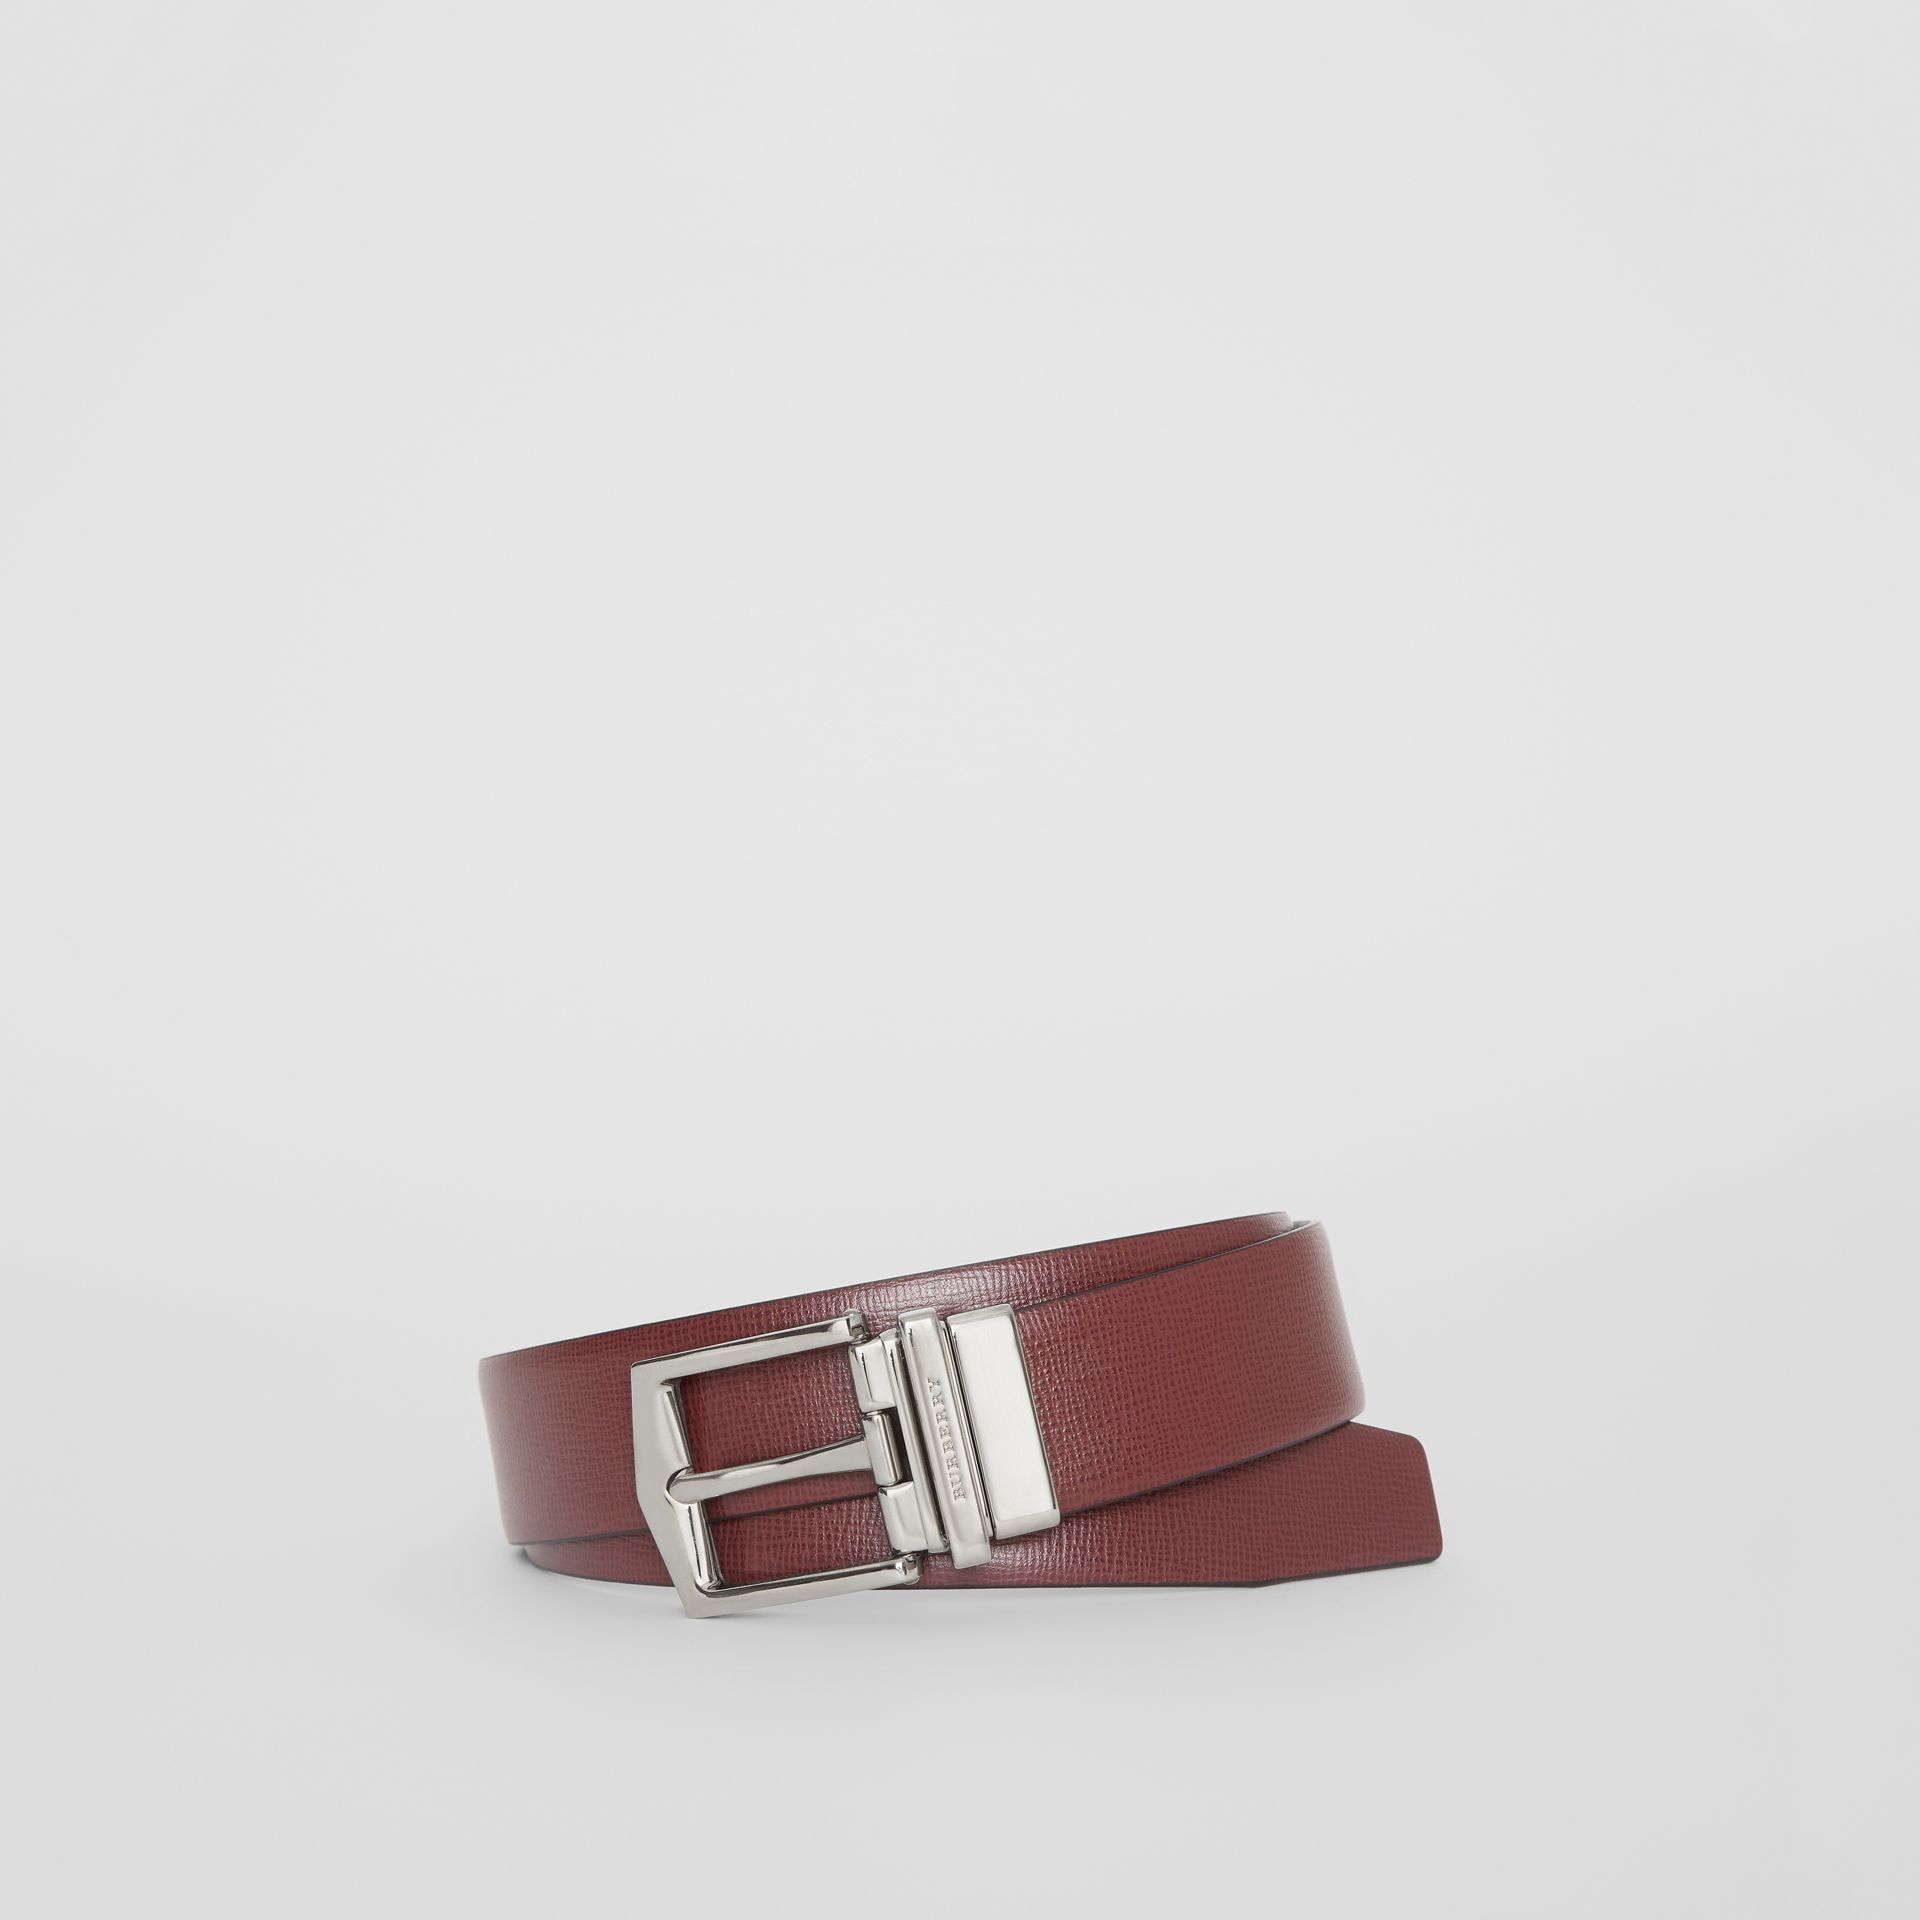 Reversible London Leather Belt in Burgundy Red/black - Men | Burberry - gallery image 0